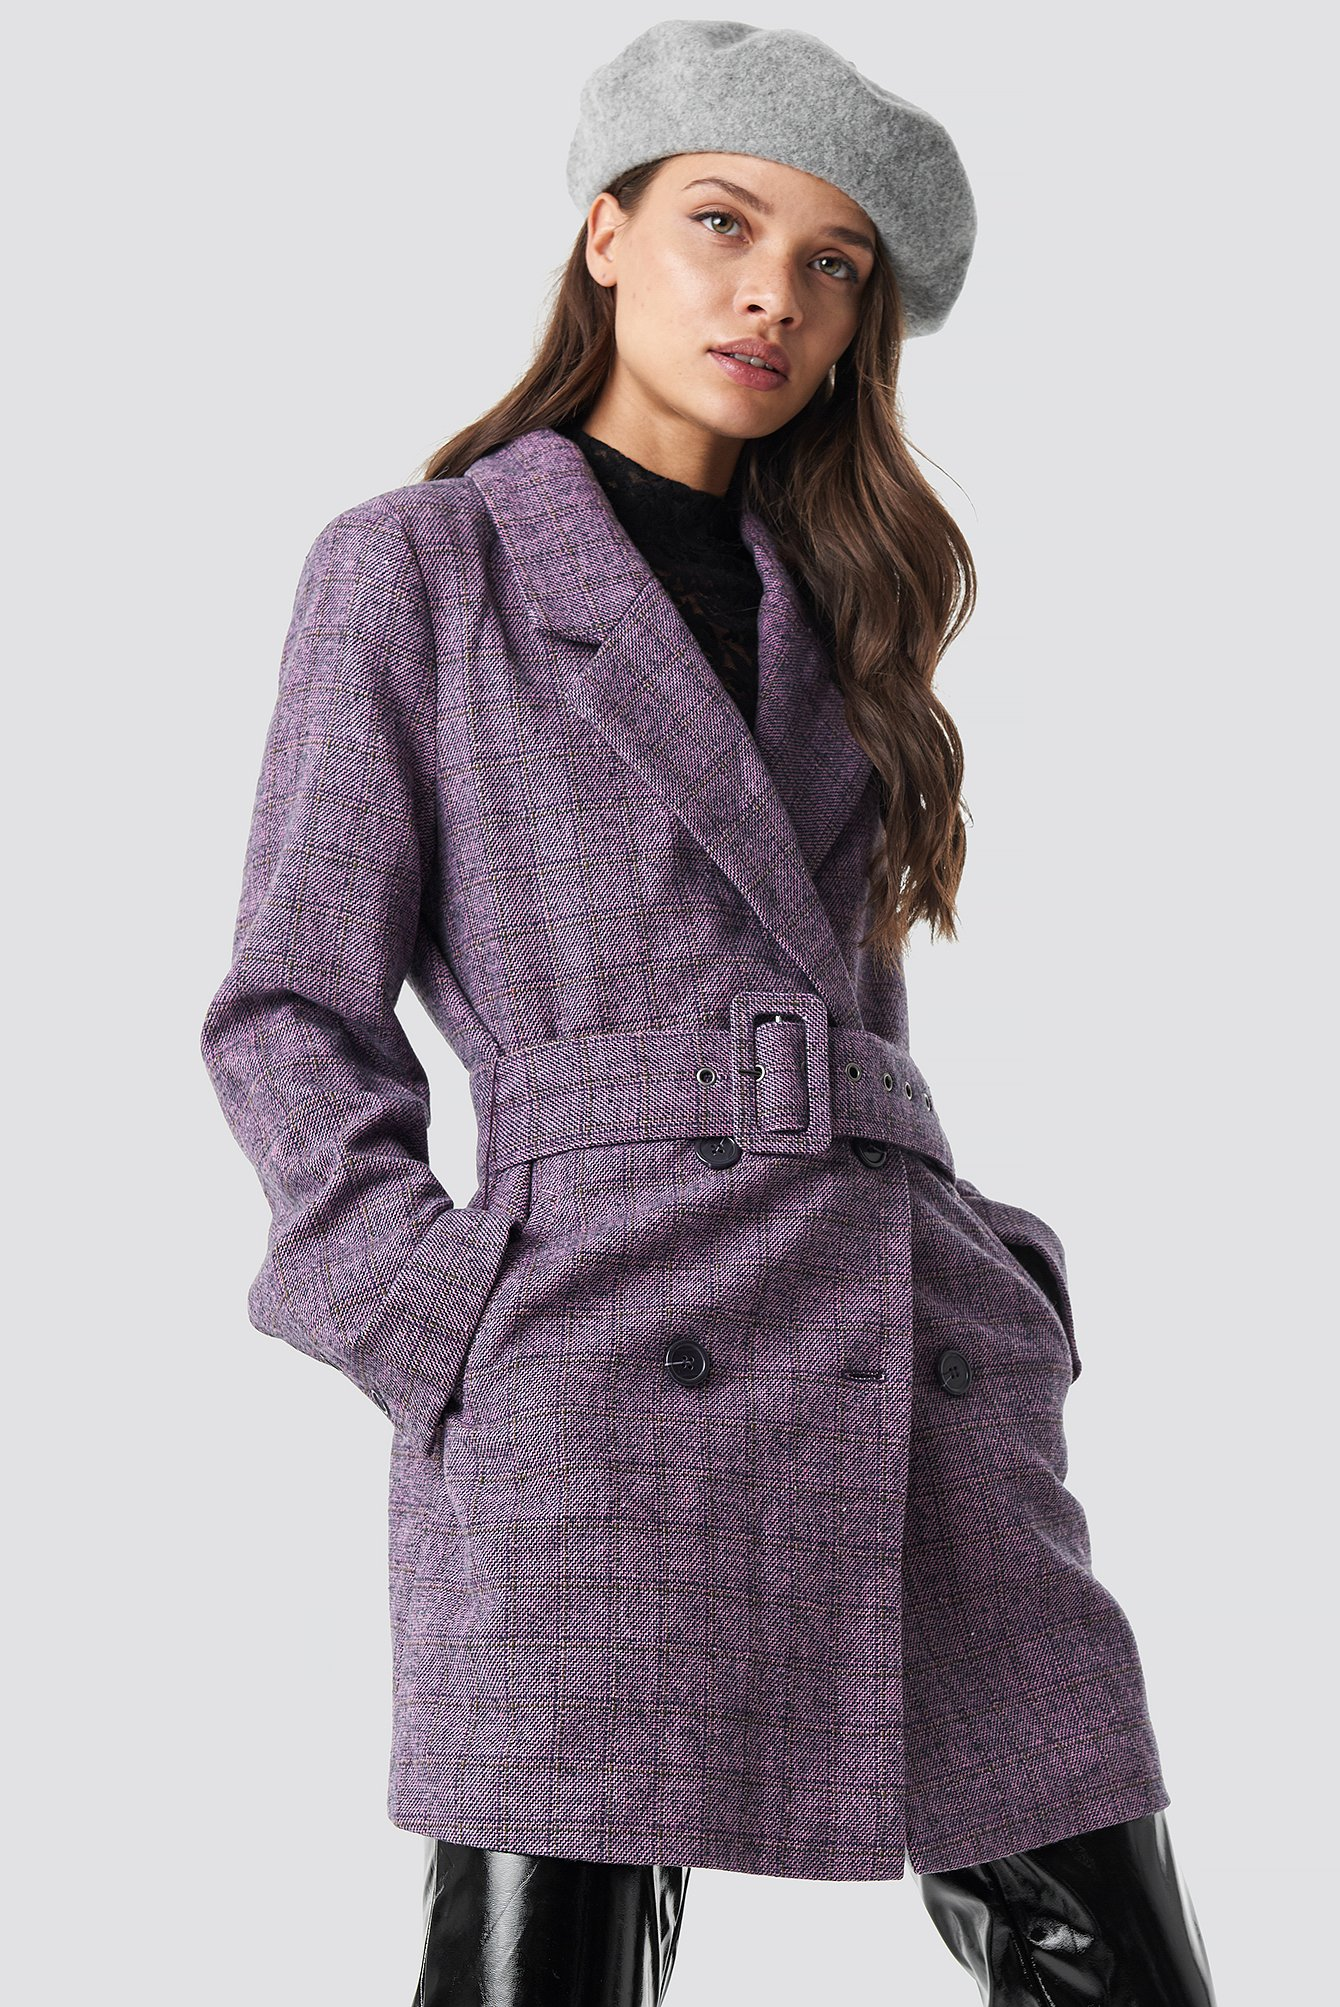 Double Breasted Belted Jacket Lila by Nakdclassic